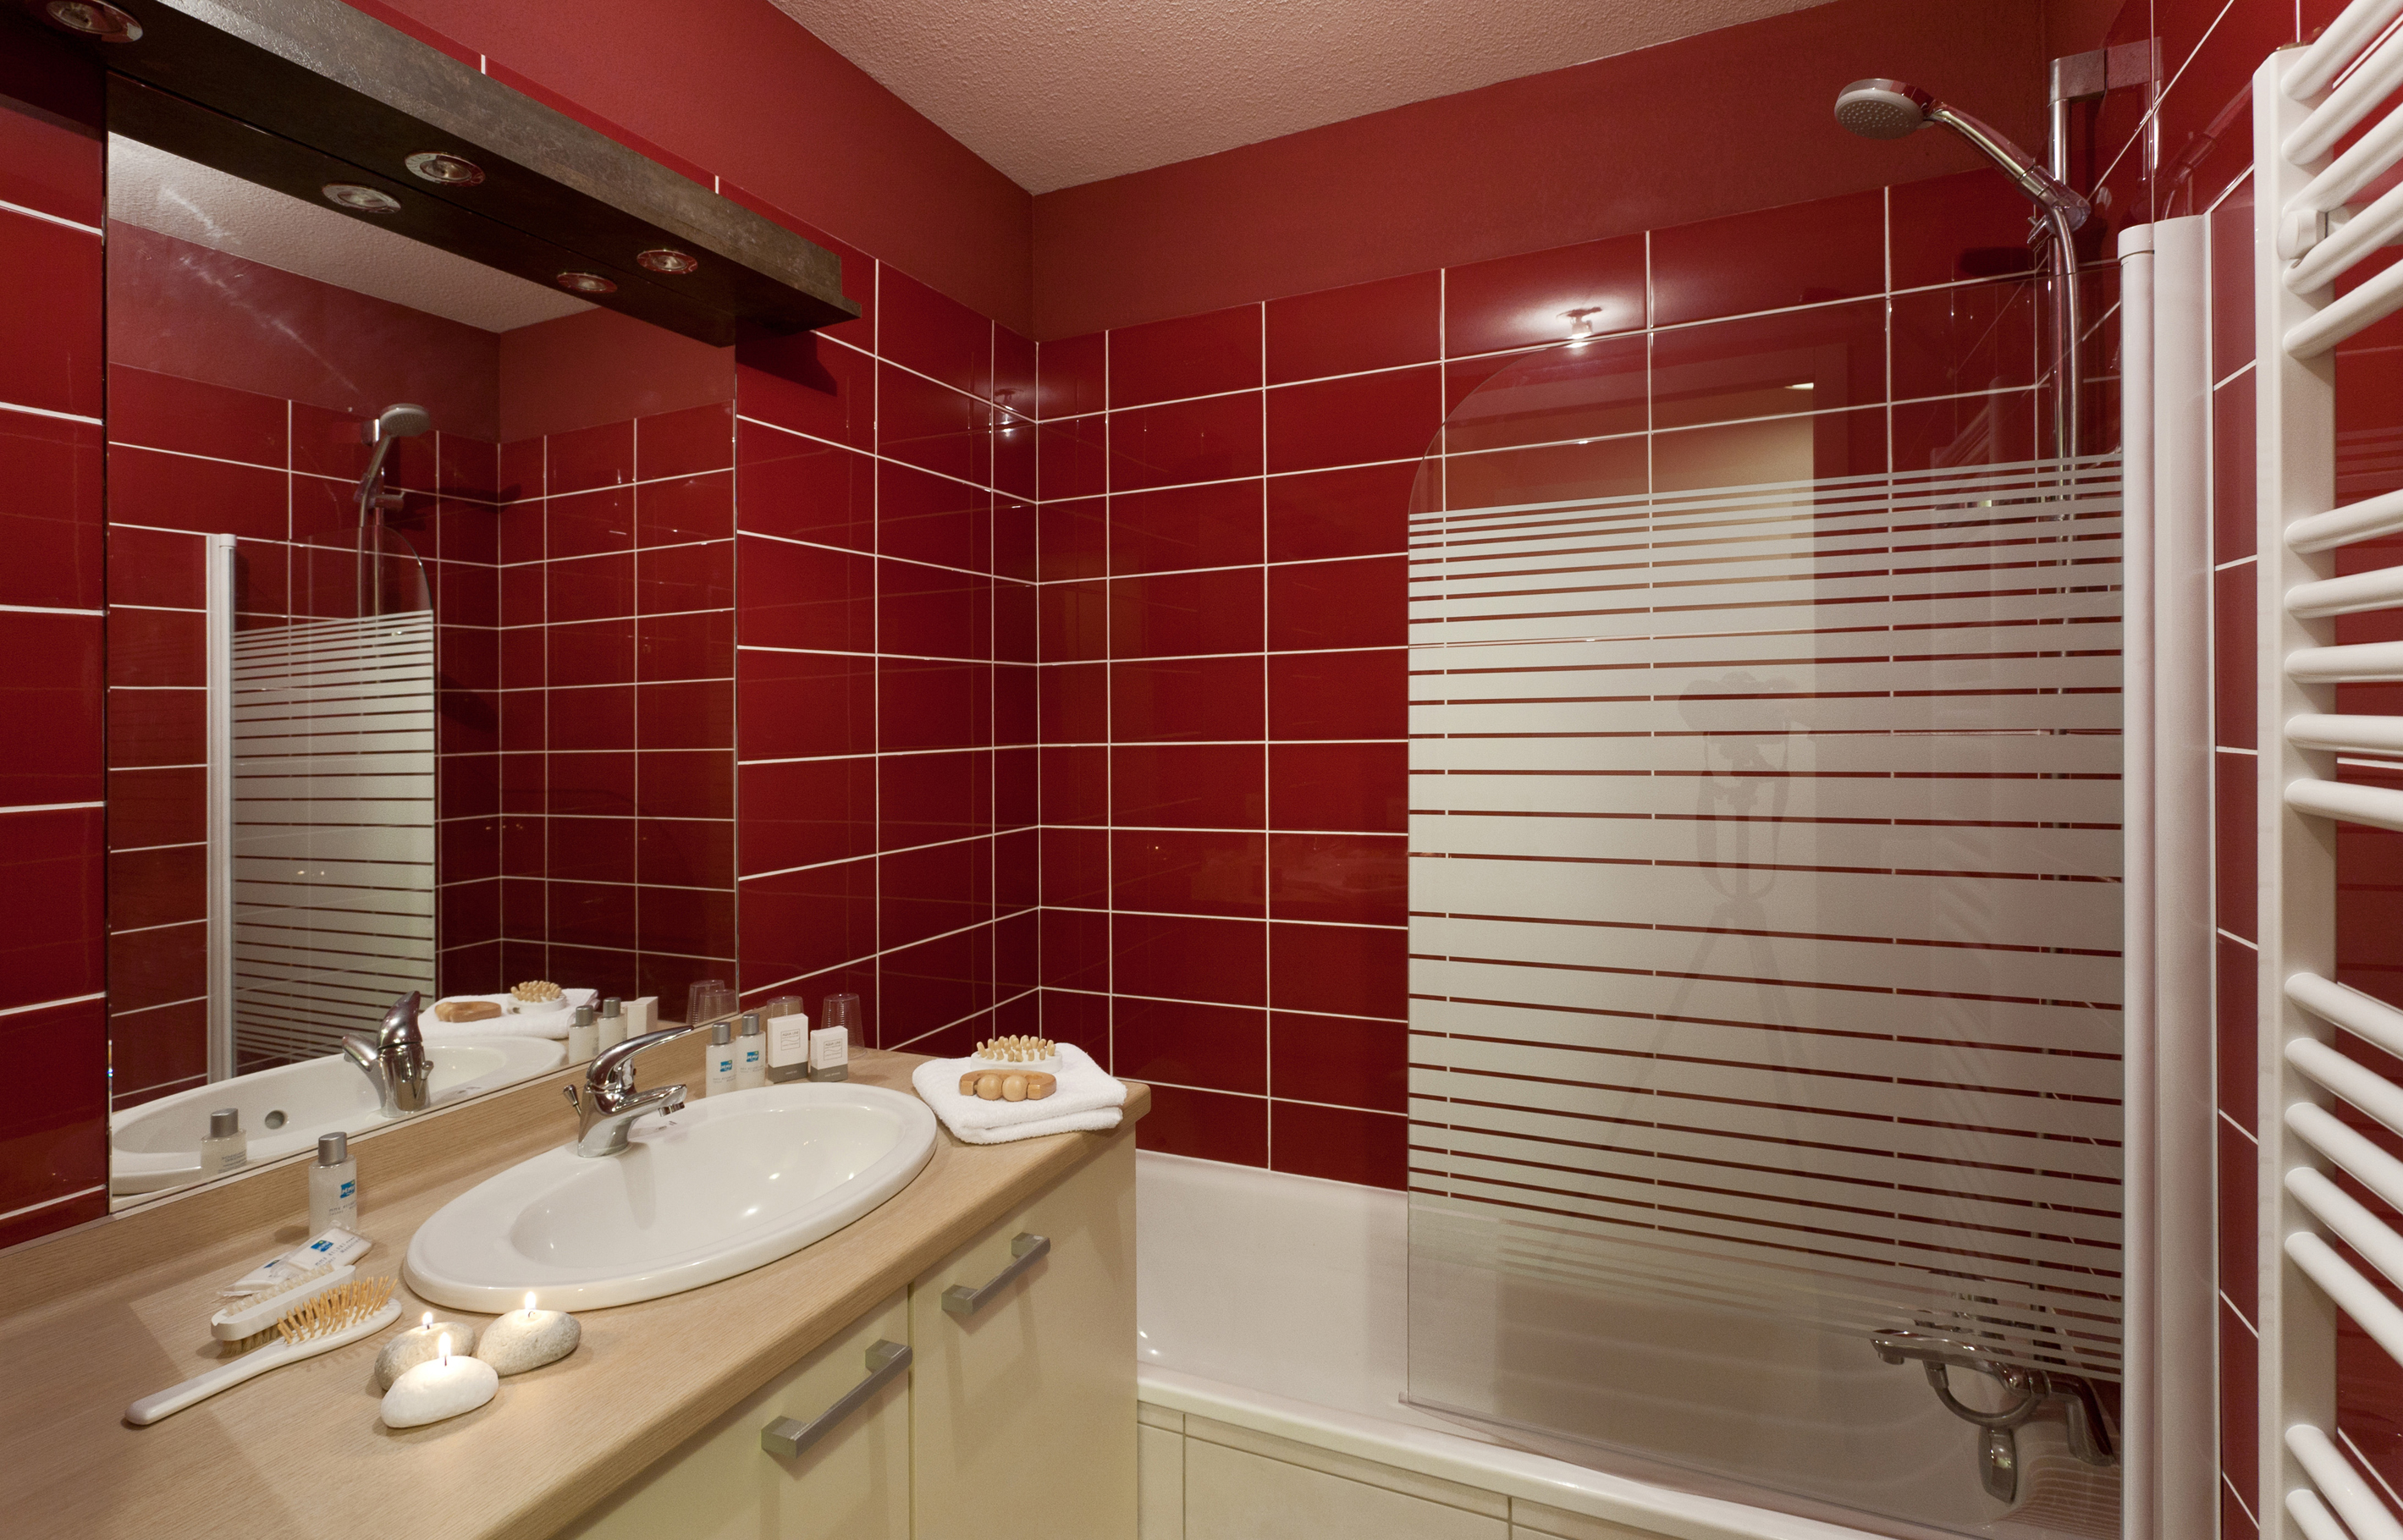 Etoile des Cimes, Sainte Foy (self catered apartments) - Bathroom